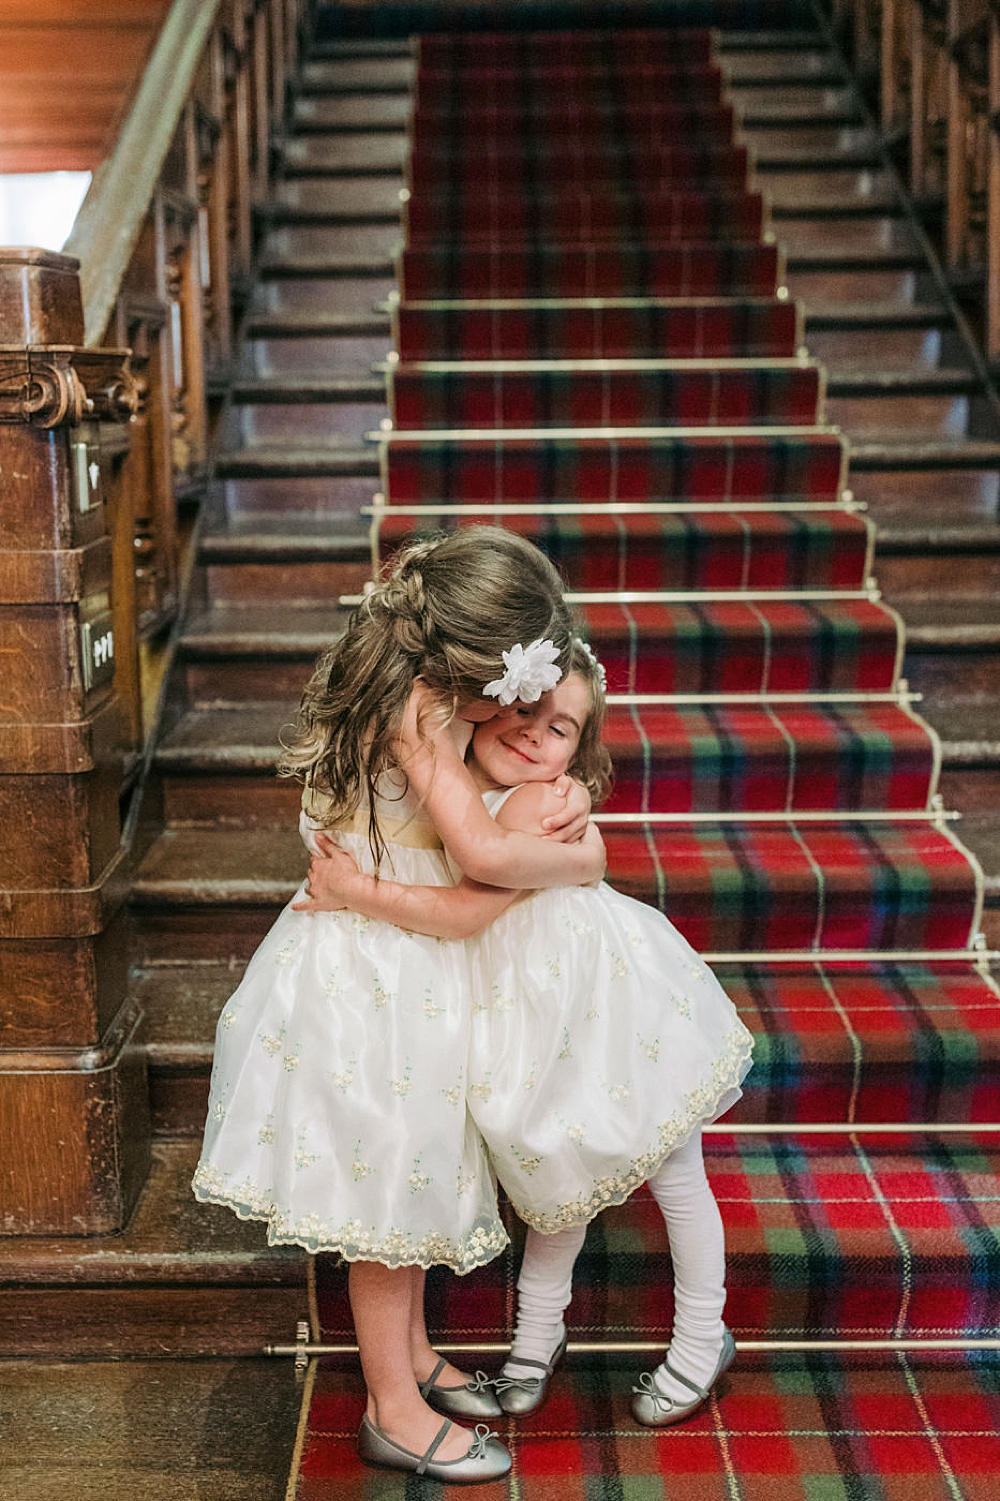 Fine Art Wedding Photographers,The Gibsons,elopement scotland,elopements,glasgow wedding and portrait photographers,light and airy wedding photographers glasgow,light and bright wedding photographers scotland,midweek weddings,romantic photographers Scotland,romantic wedding photographers,